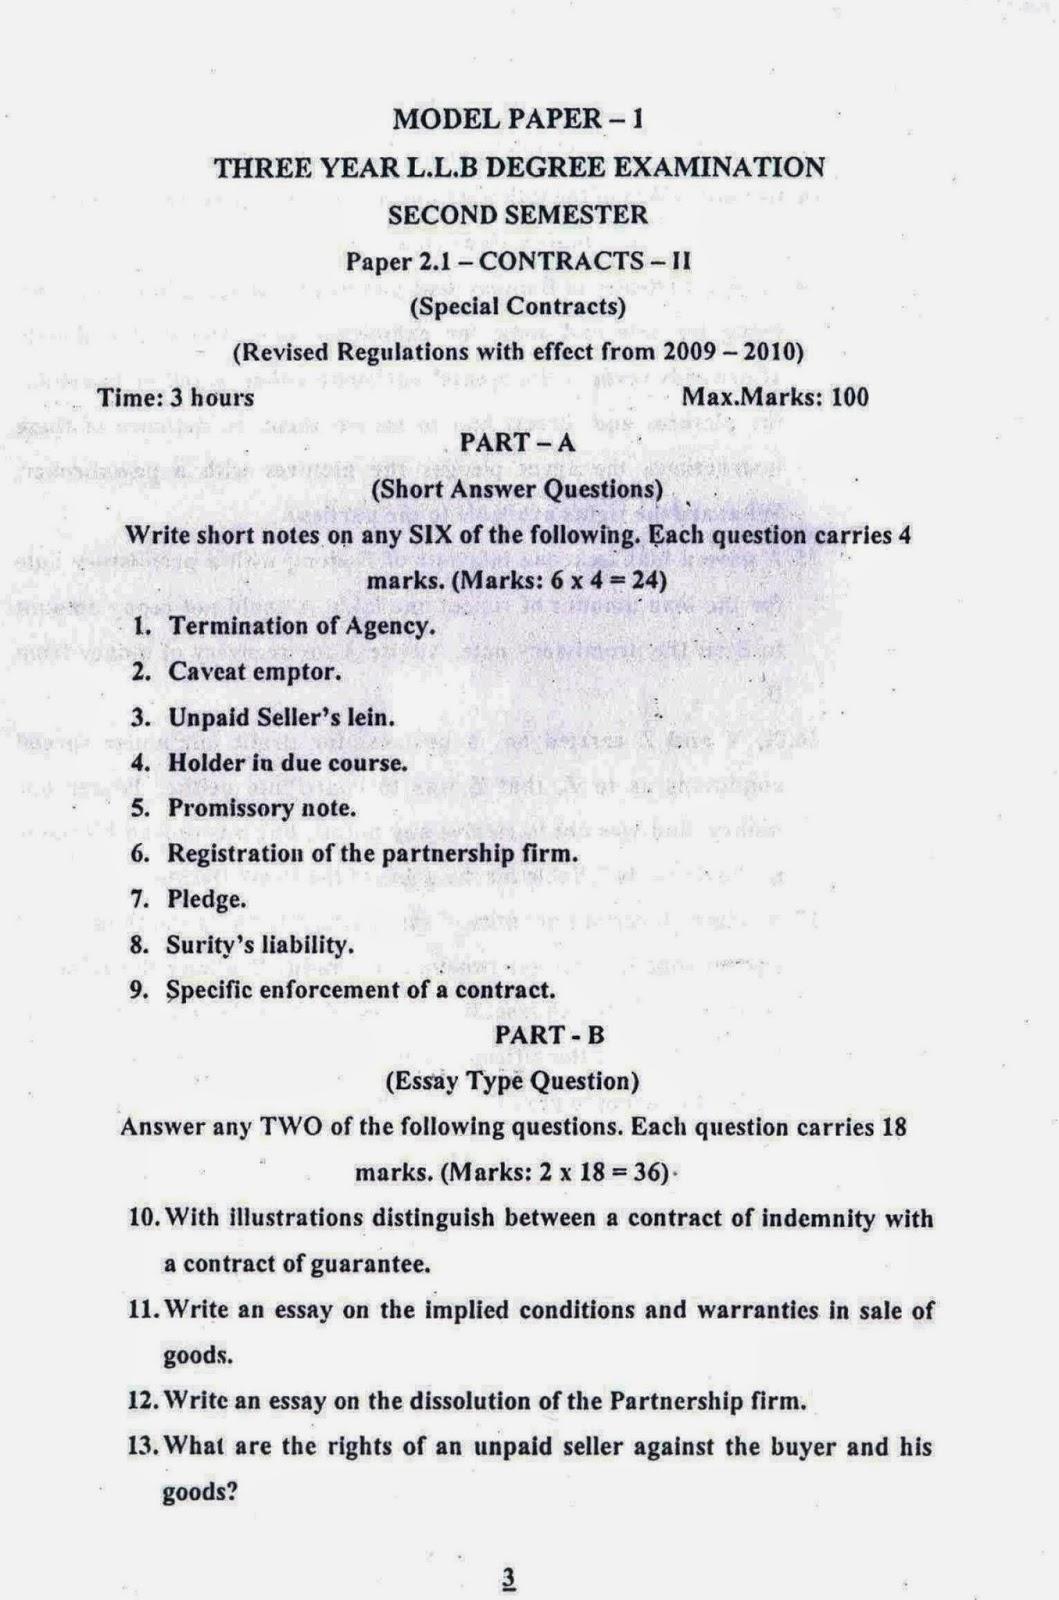 lawdetails pot in 2 1 contract ii semister2 sv university model paper 1 page 1